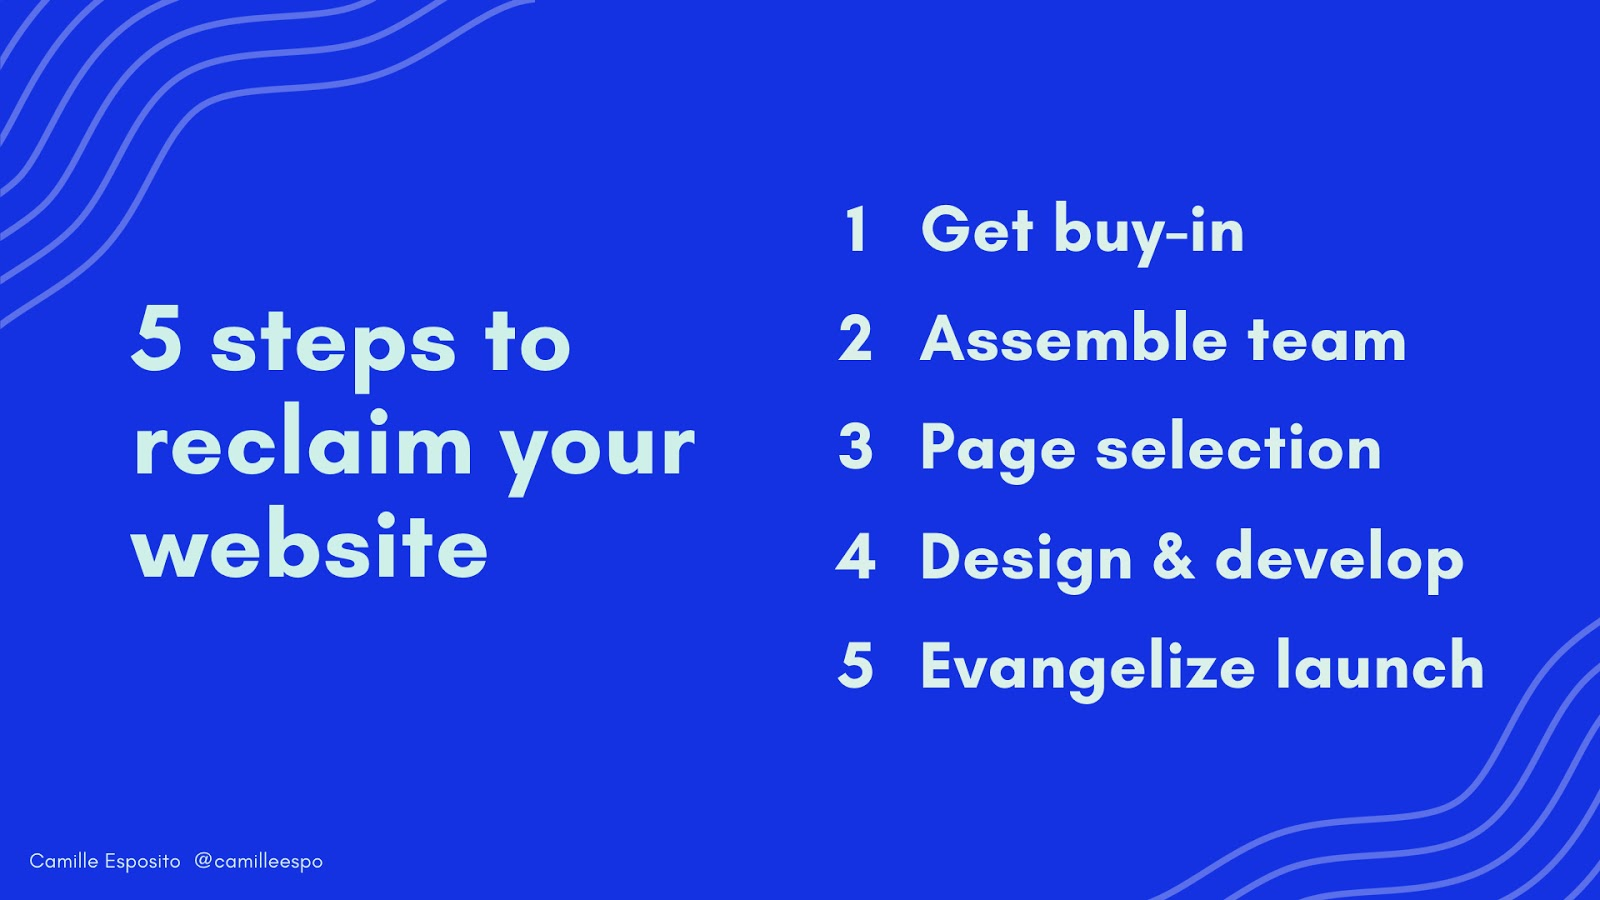 5 steps to reclaim your website